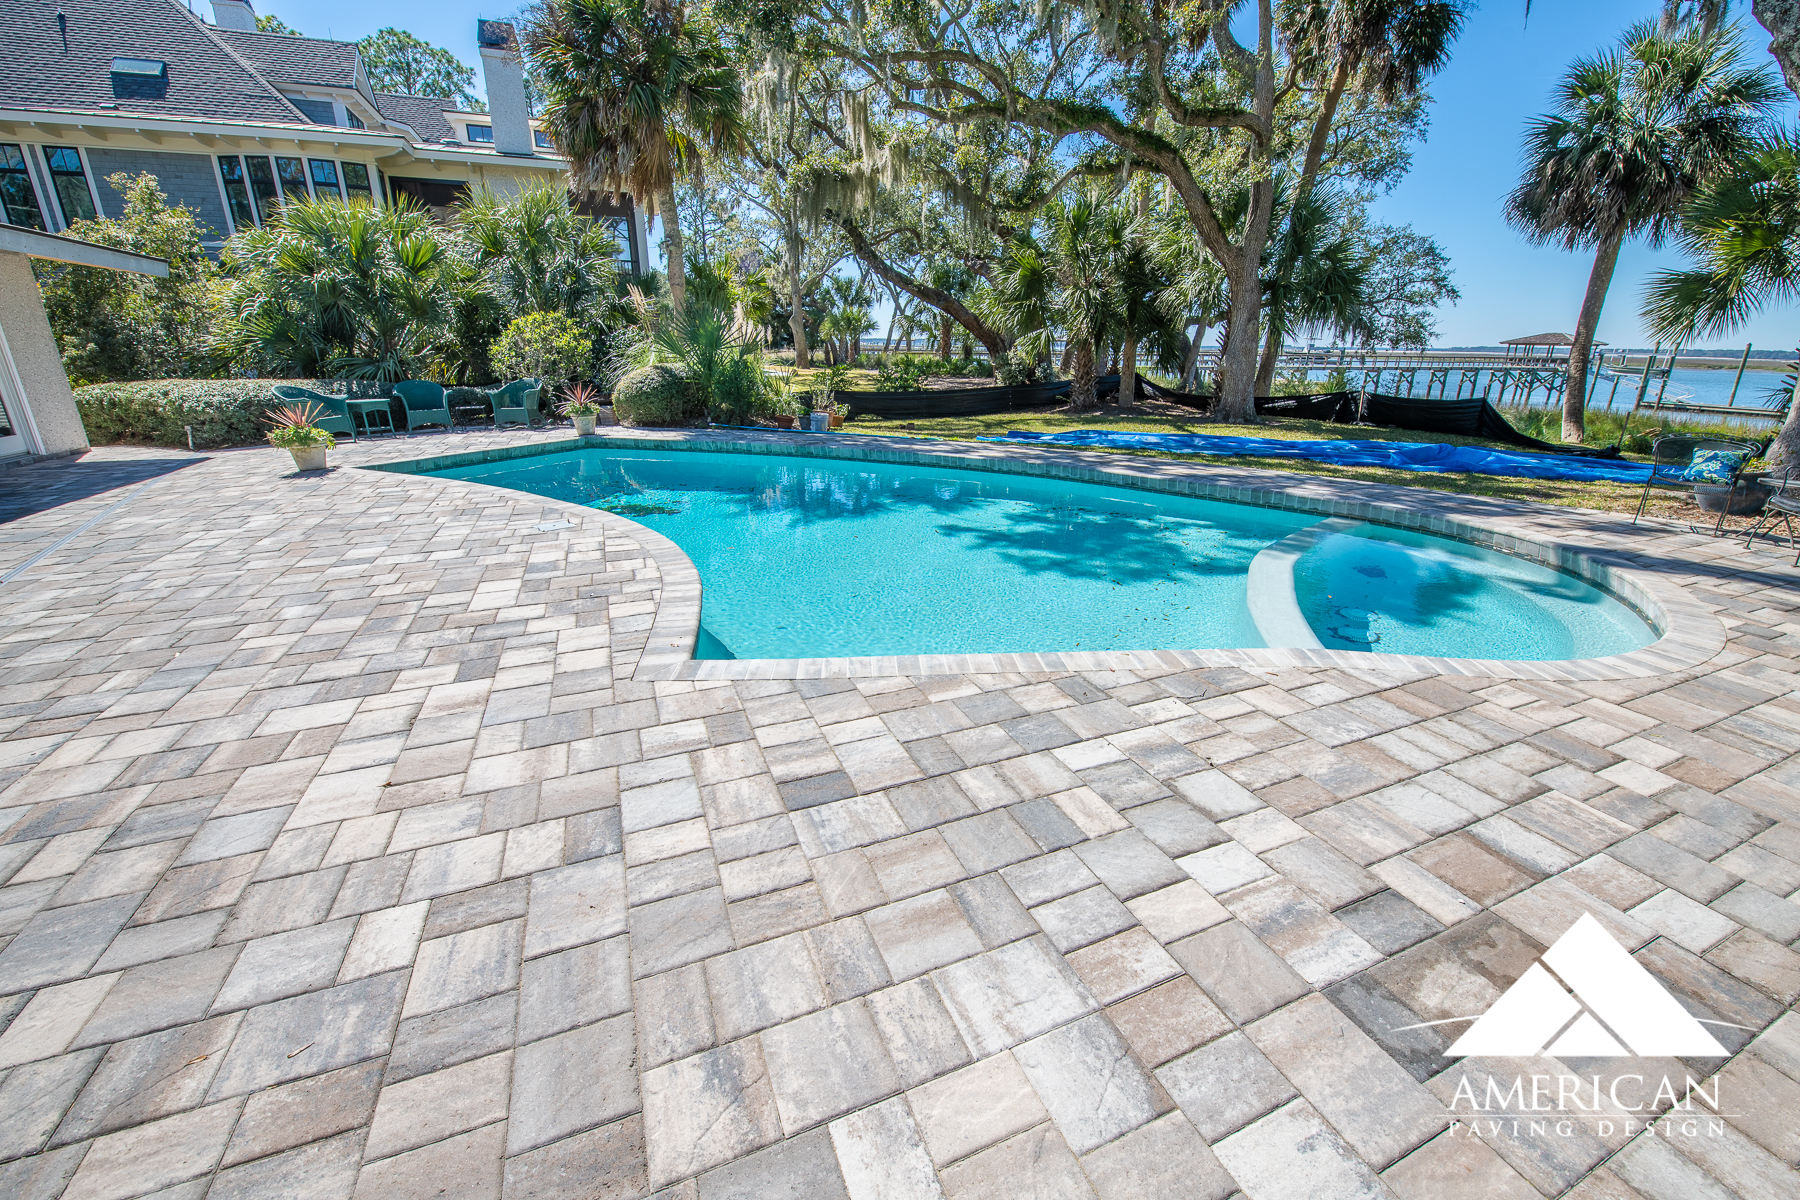 This Tremron, stonehurst remodel pool deck is beyond prestine! Choosing to update your pool deck not only adds value to your home, but makes entertaining more exciting!